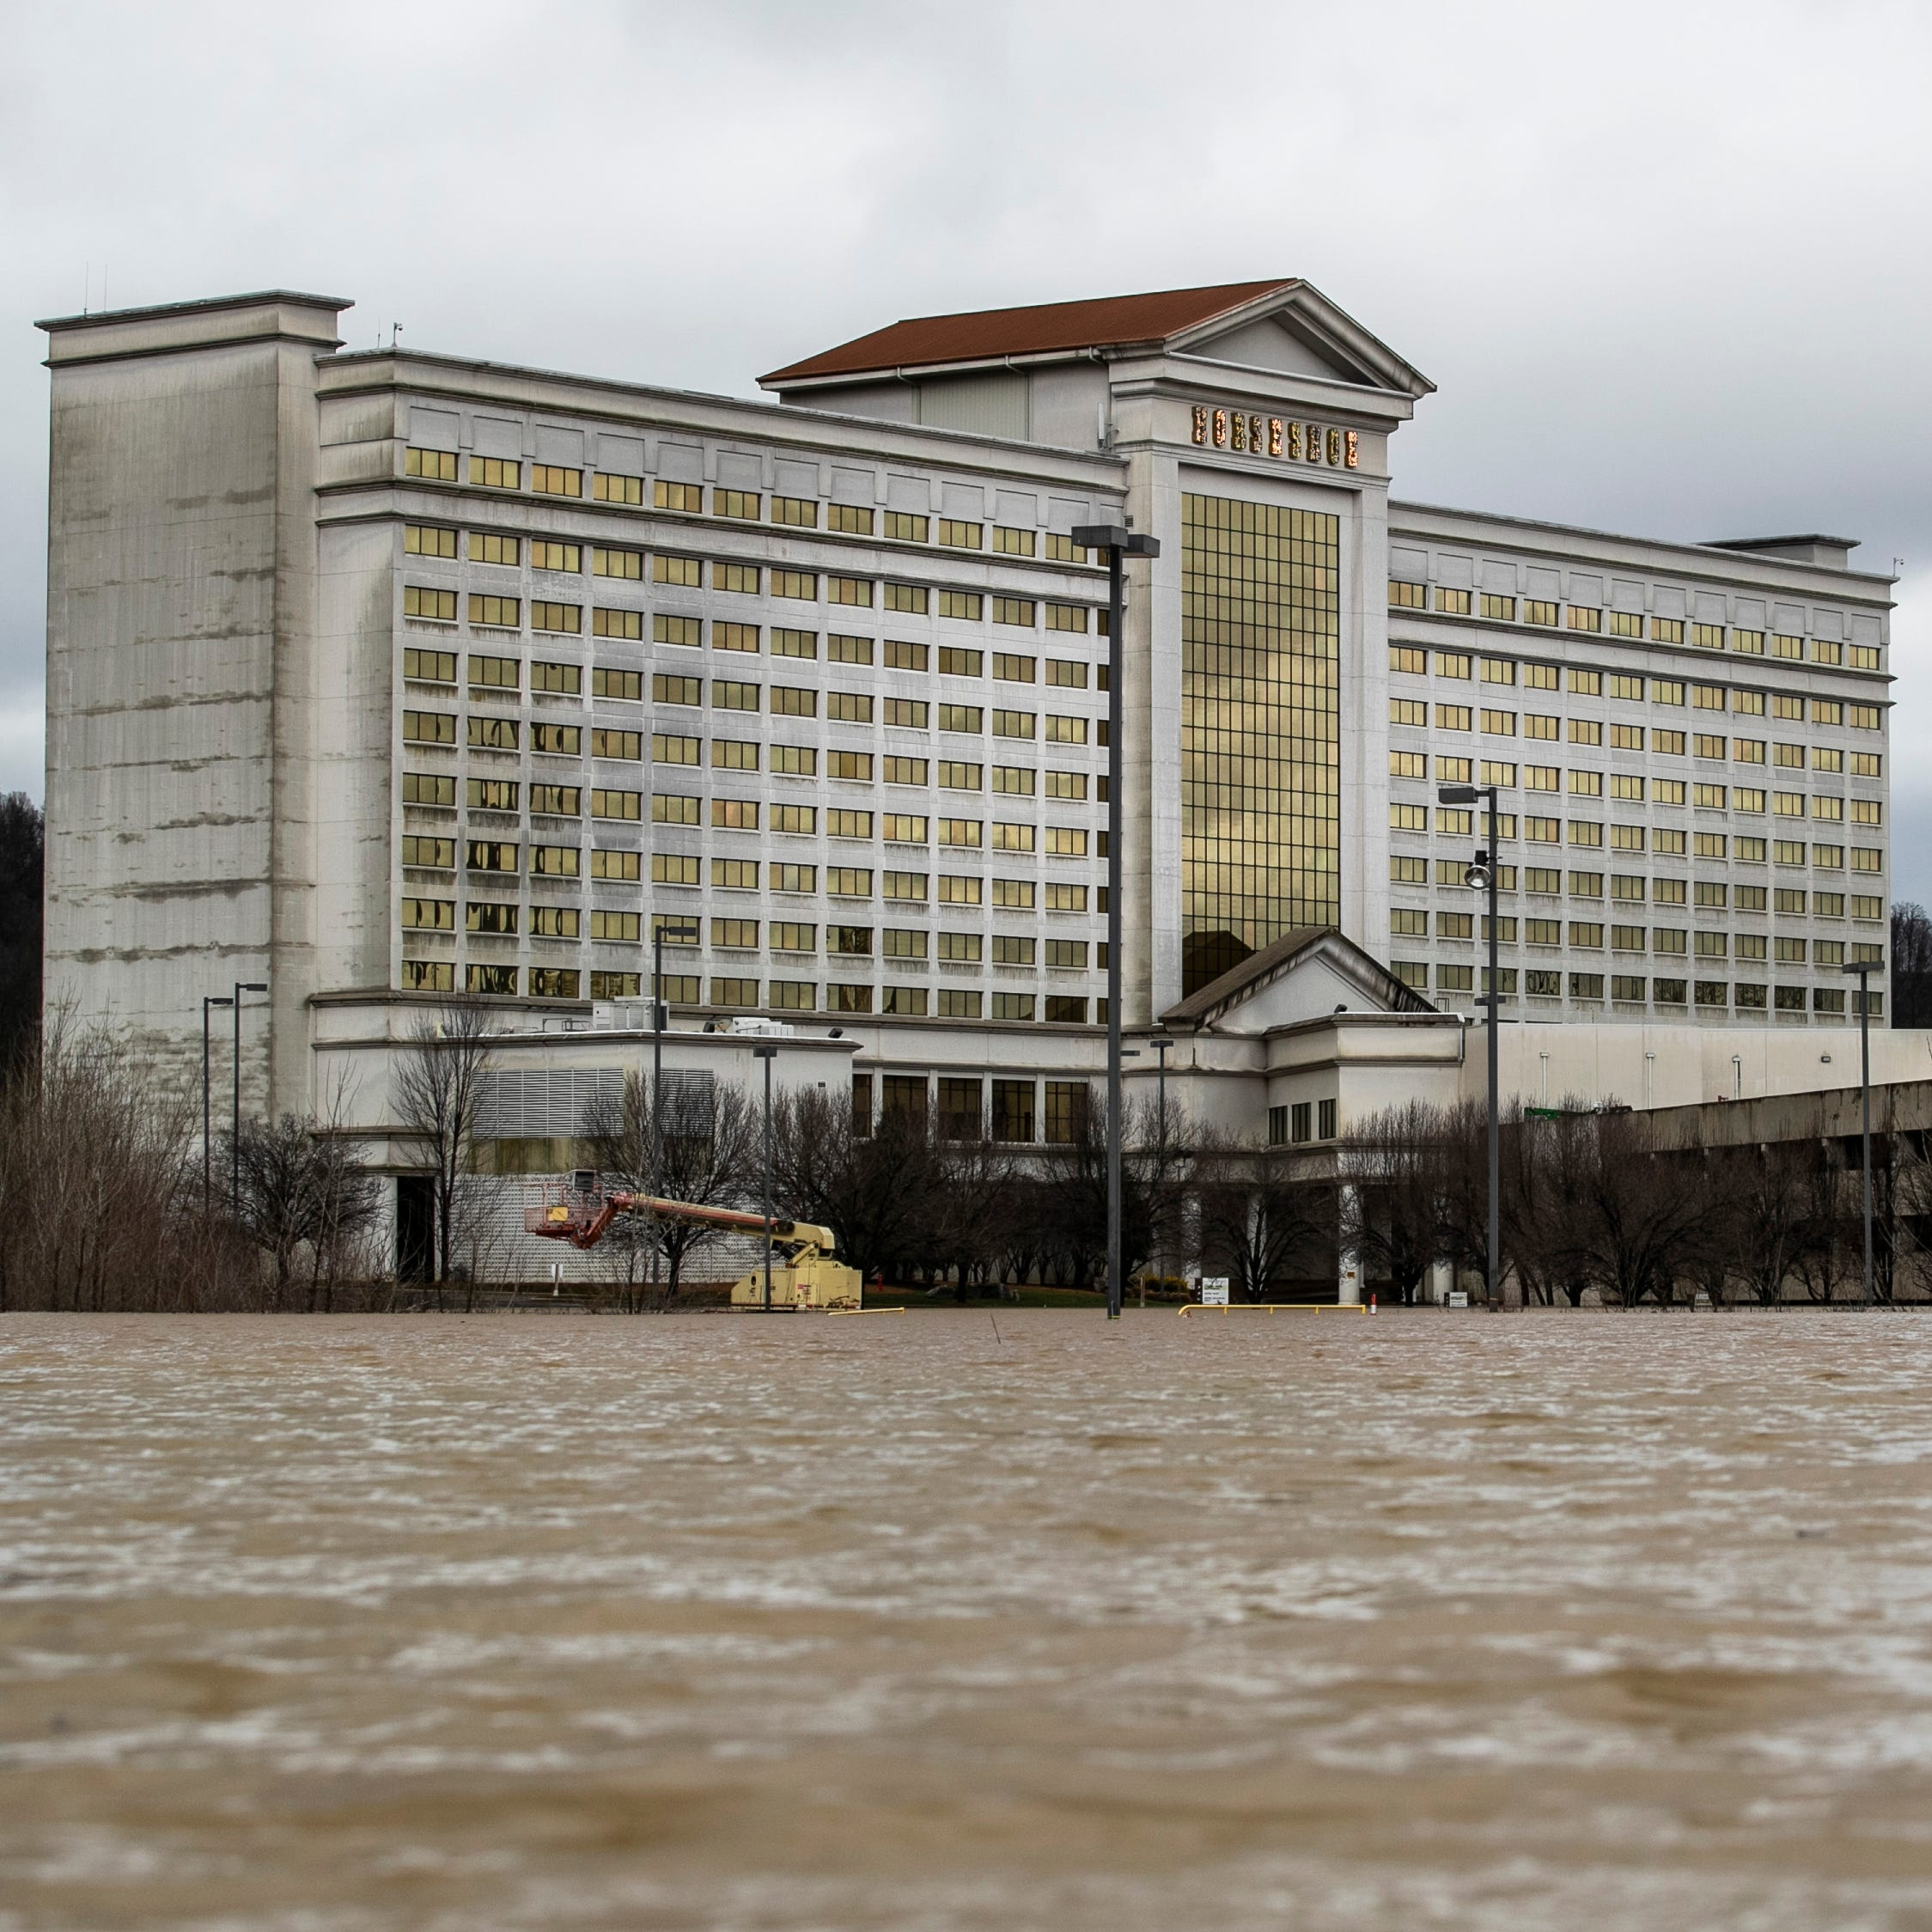 Horseshoe Southern Indiana Casino closes amid Ohio River flood warnings